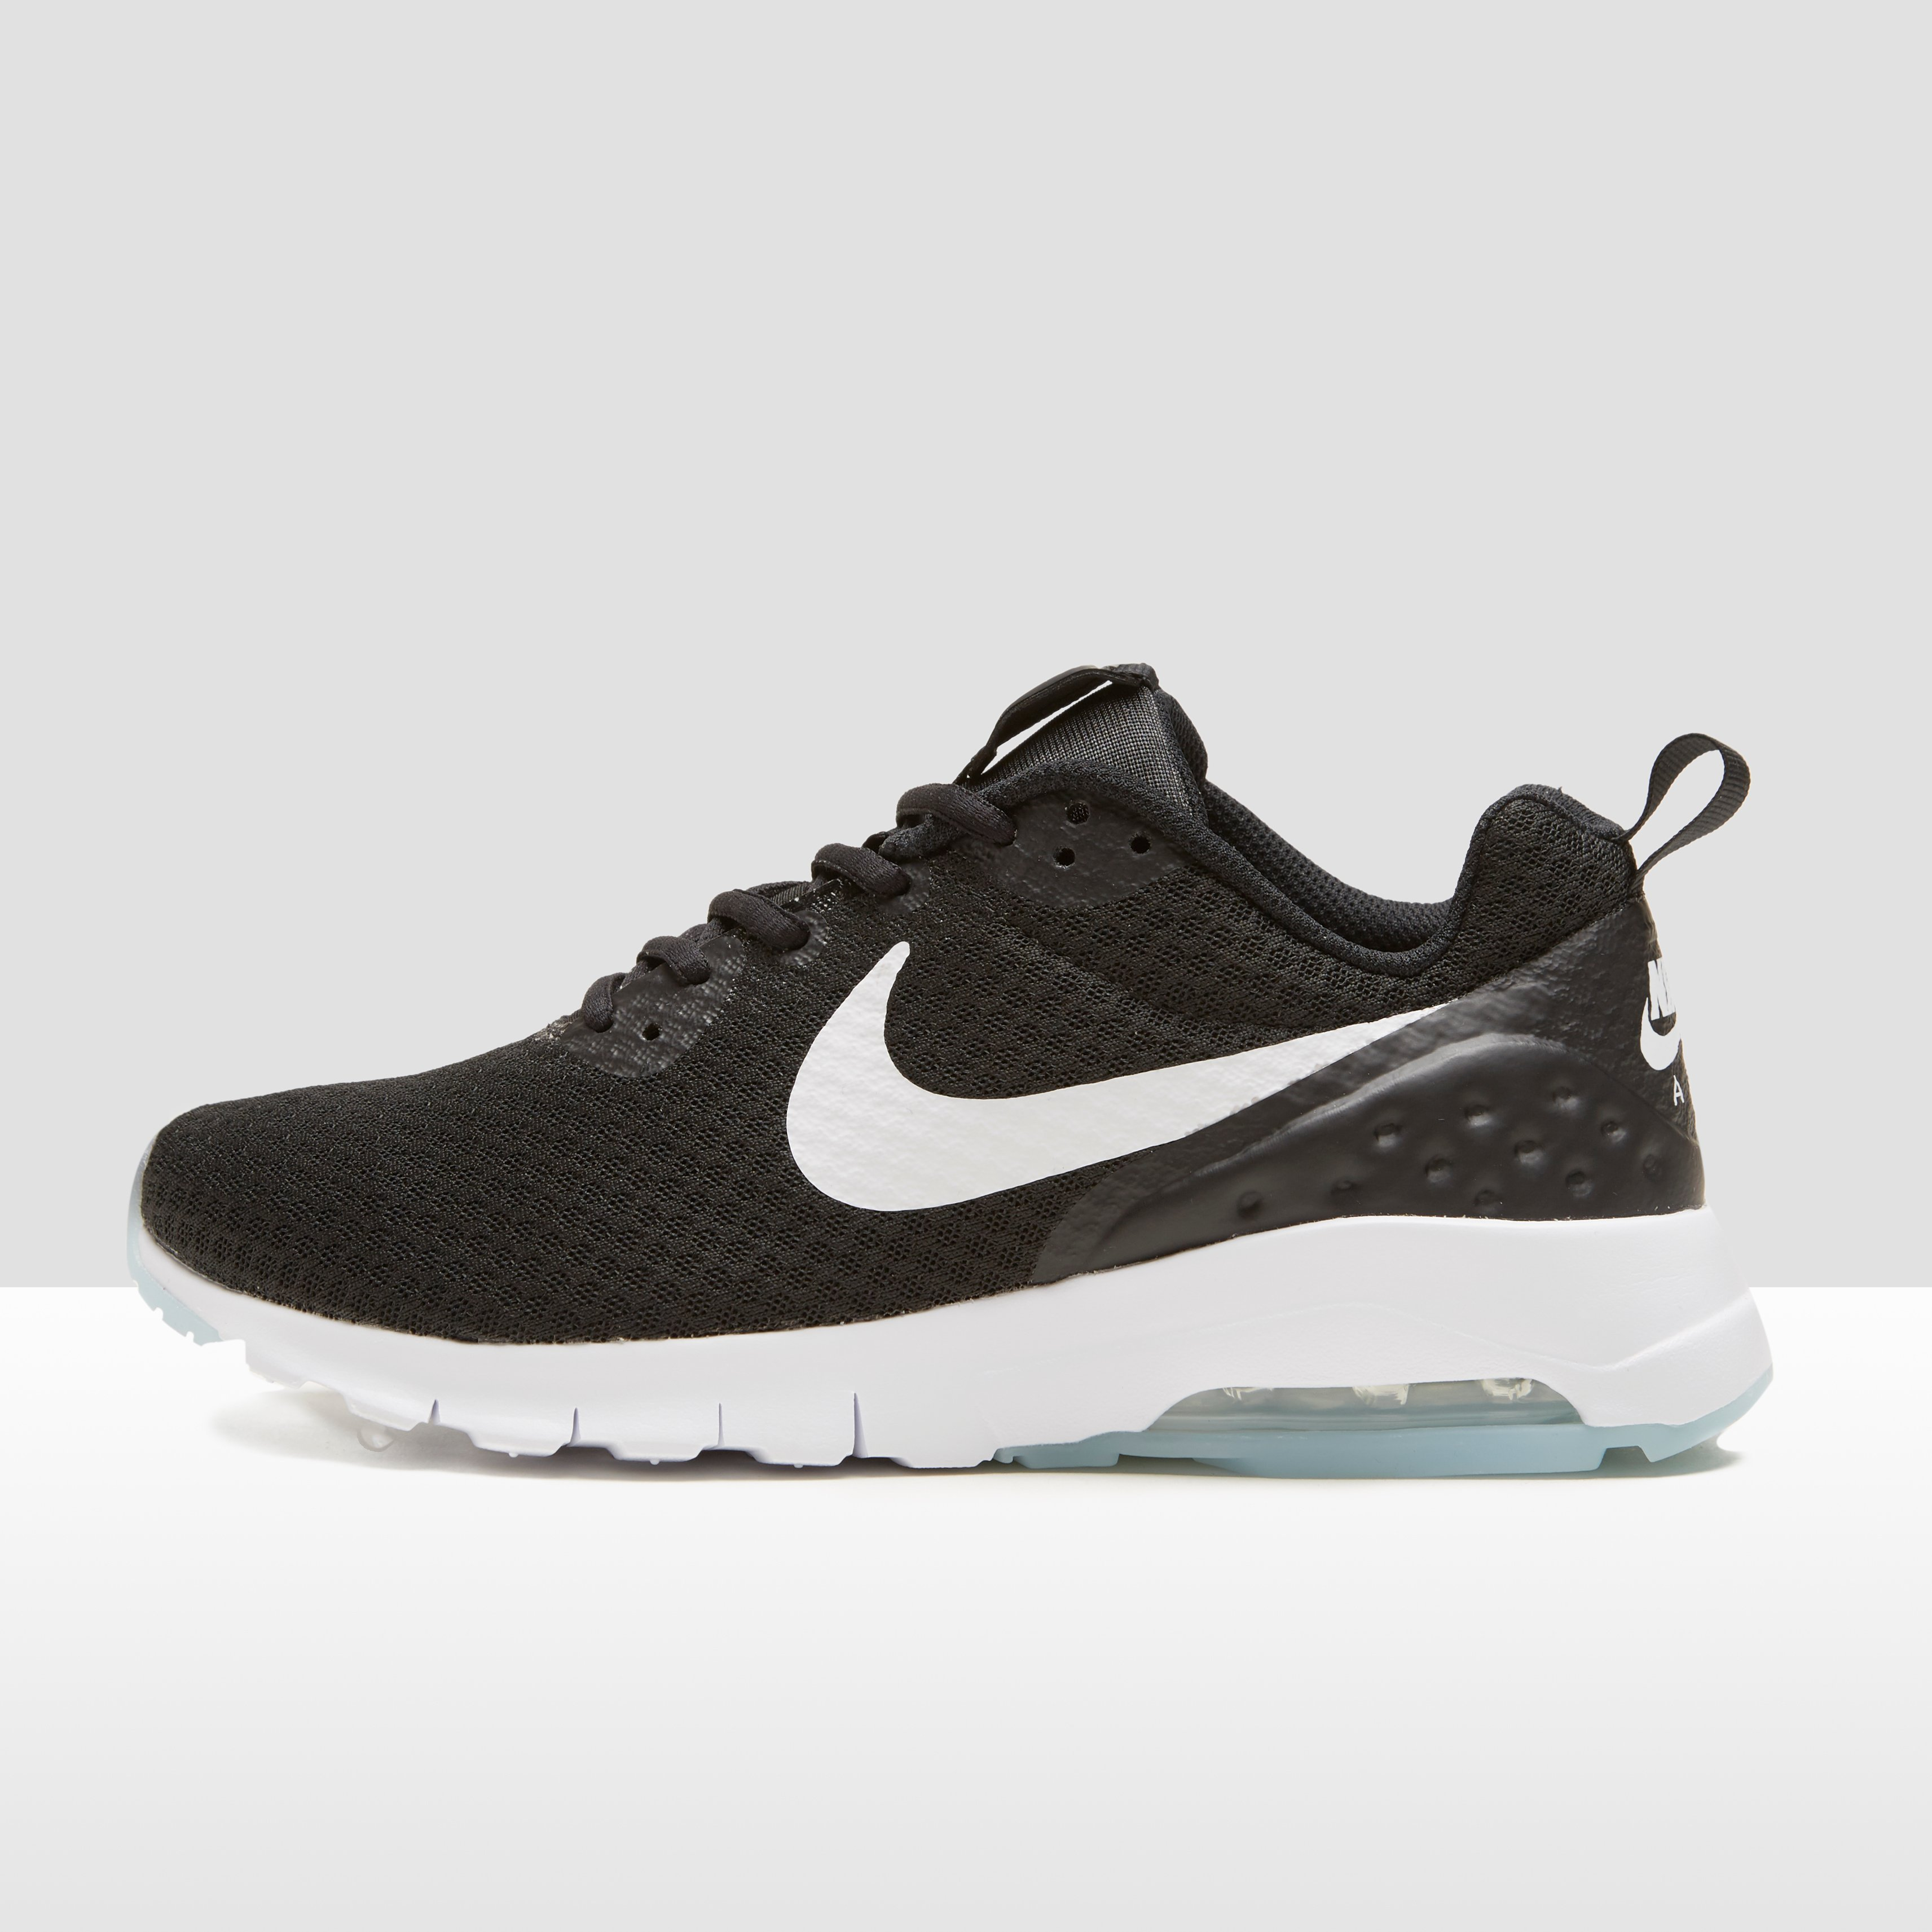 Nike - Baskets Air Max Mouvement Faible Course - Dames - Baskets - Noir - 37.5 klGcp1eYZJ